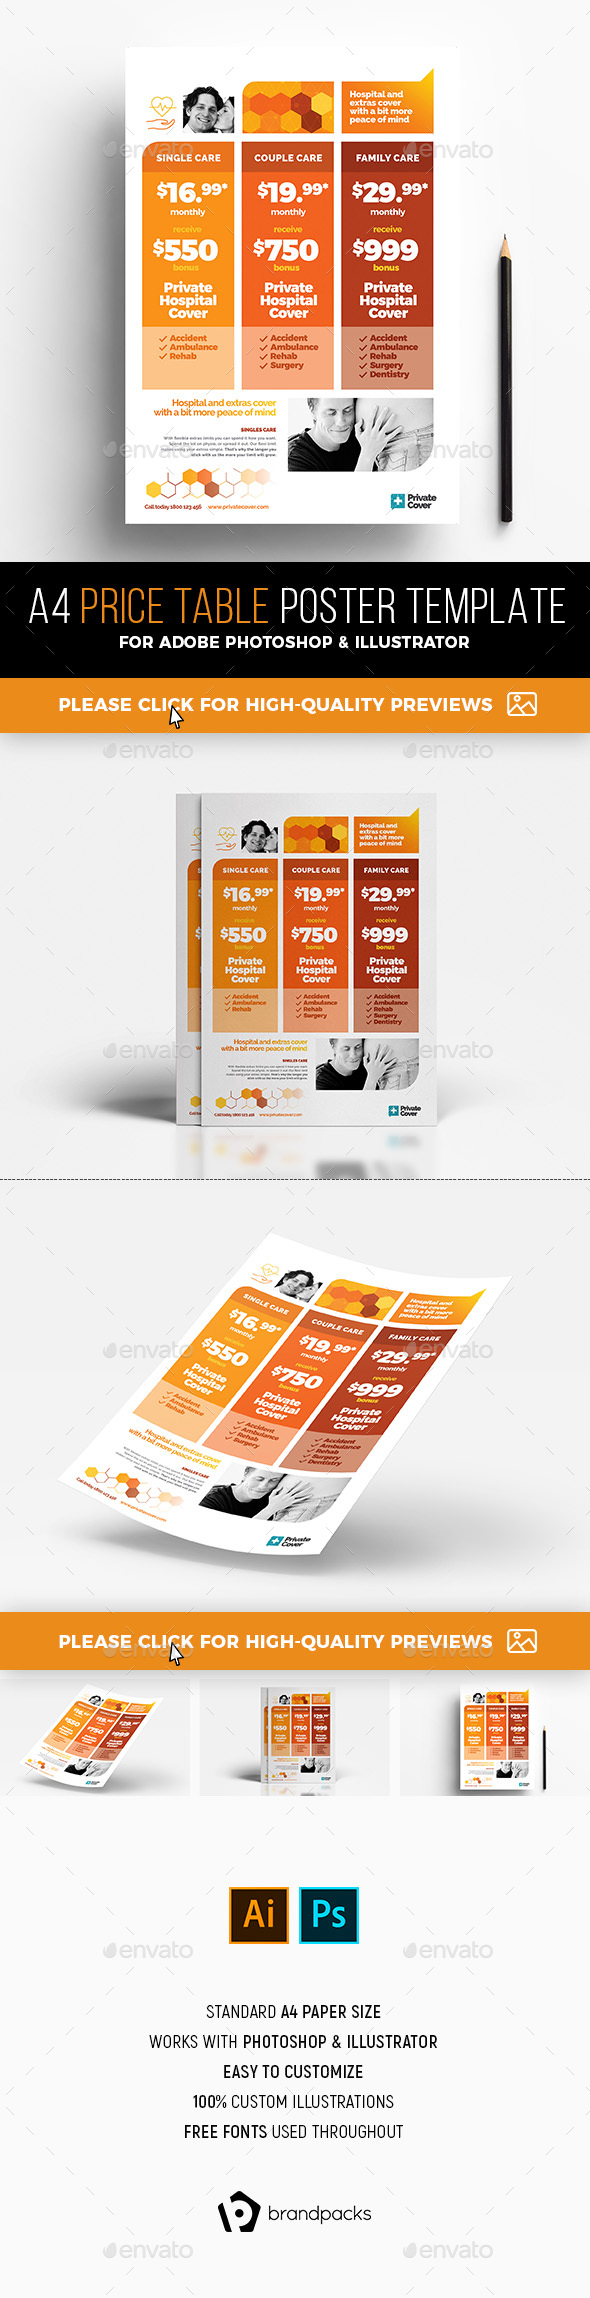 A4 Price Table Poster Template - Corporate Flyers